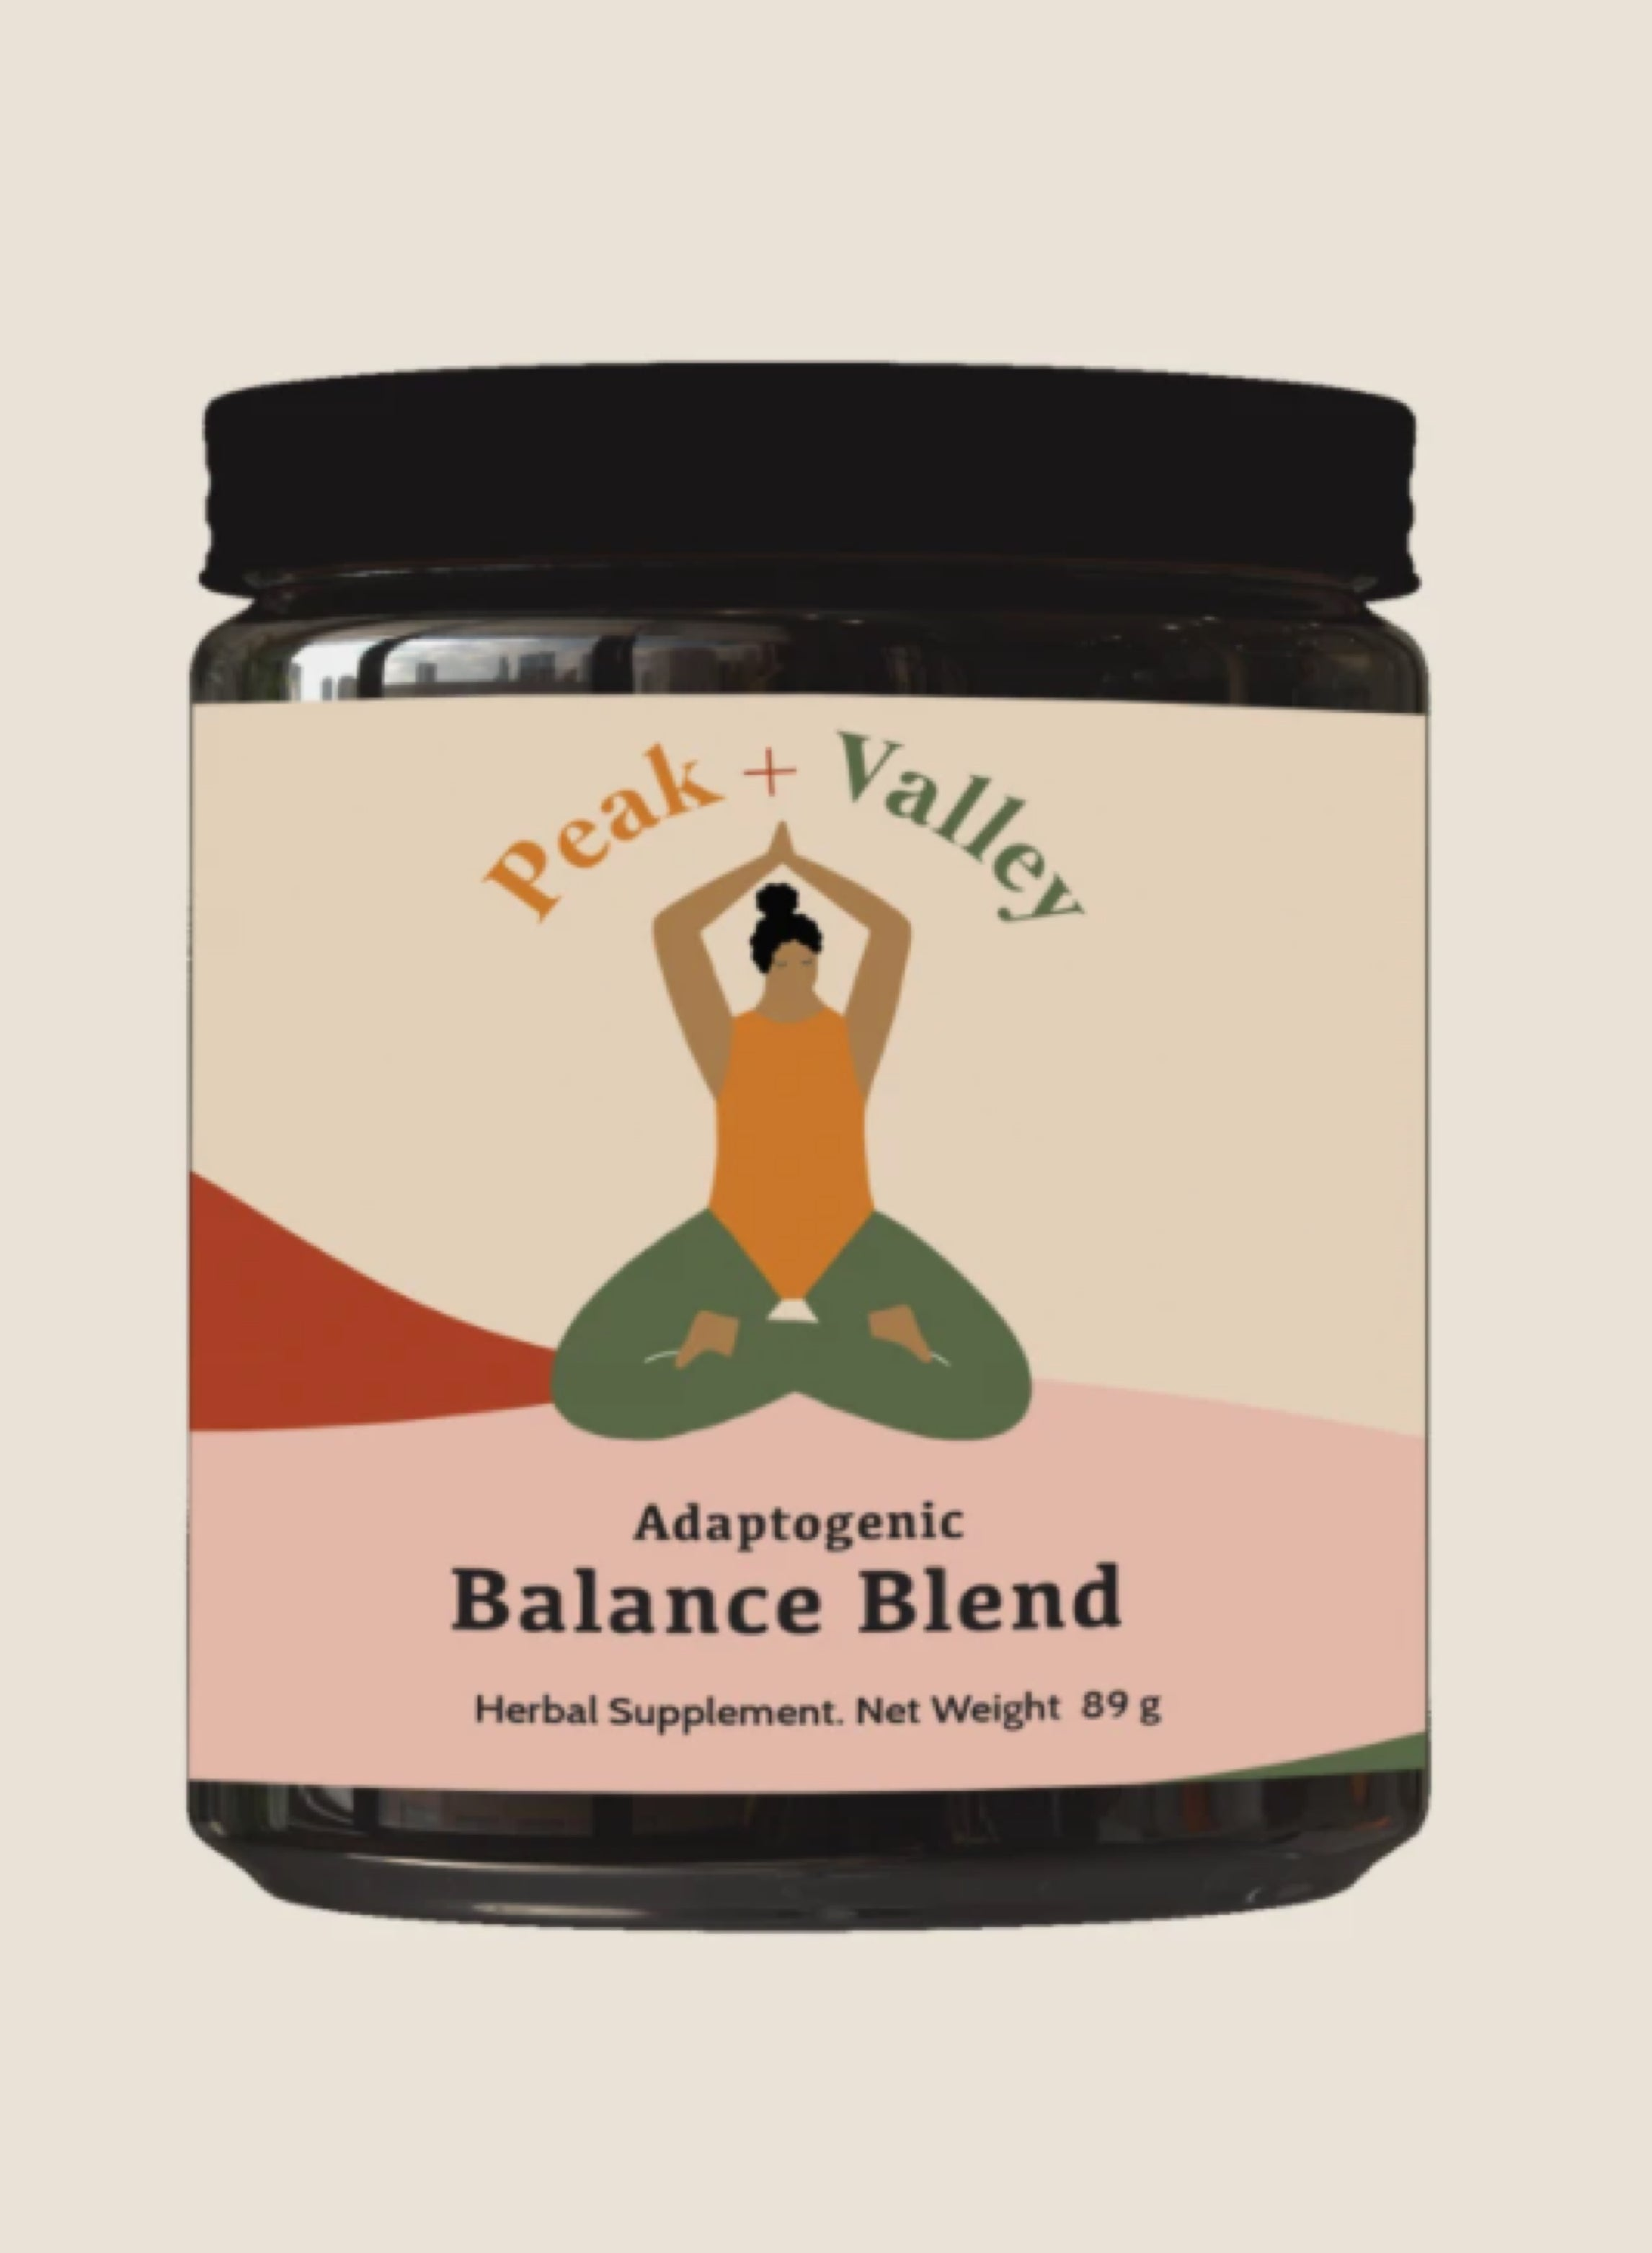 Peak and Valley Balance Blend